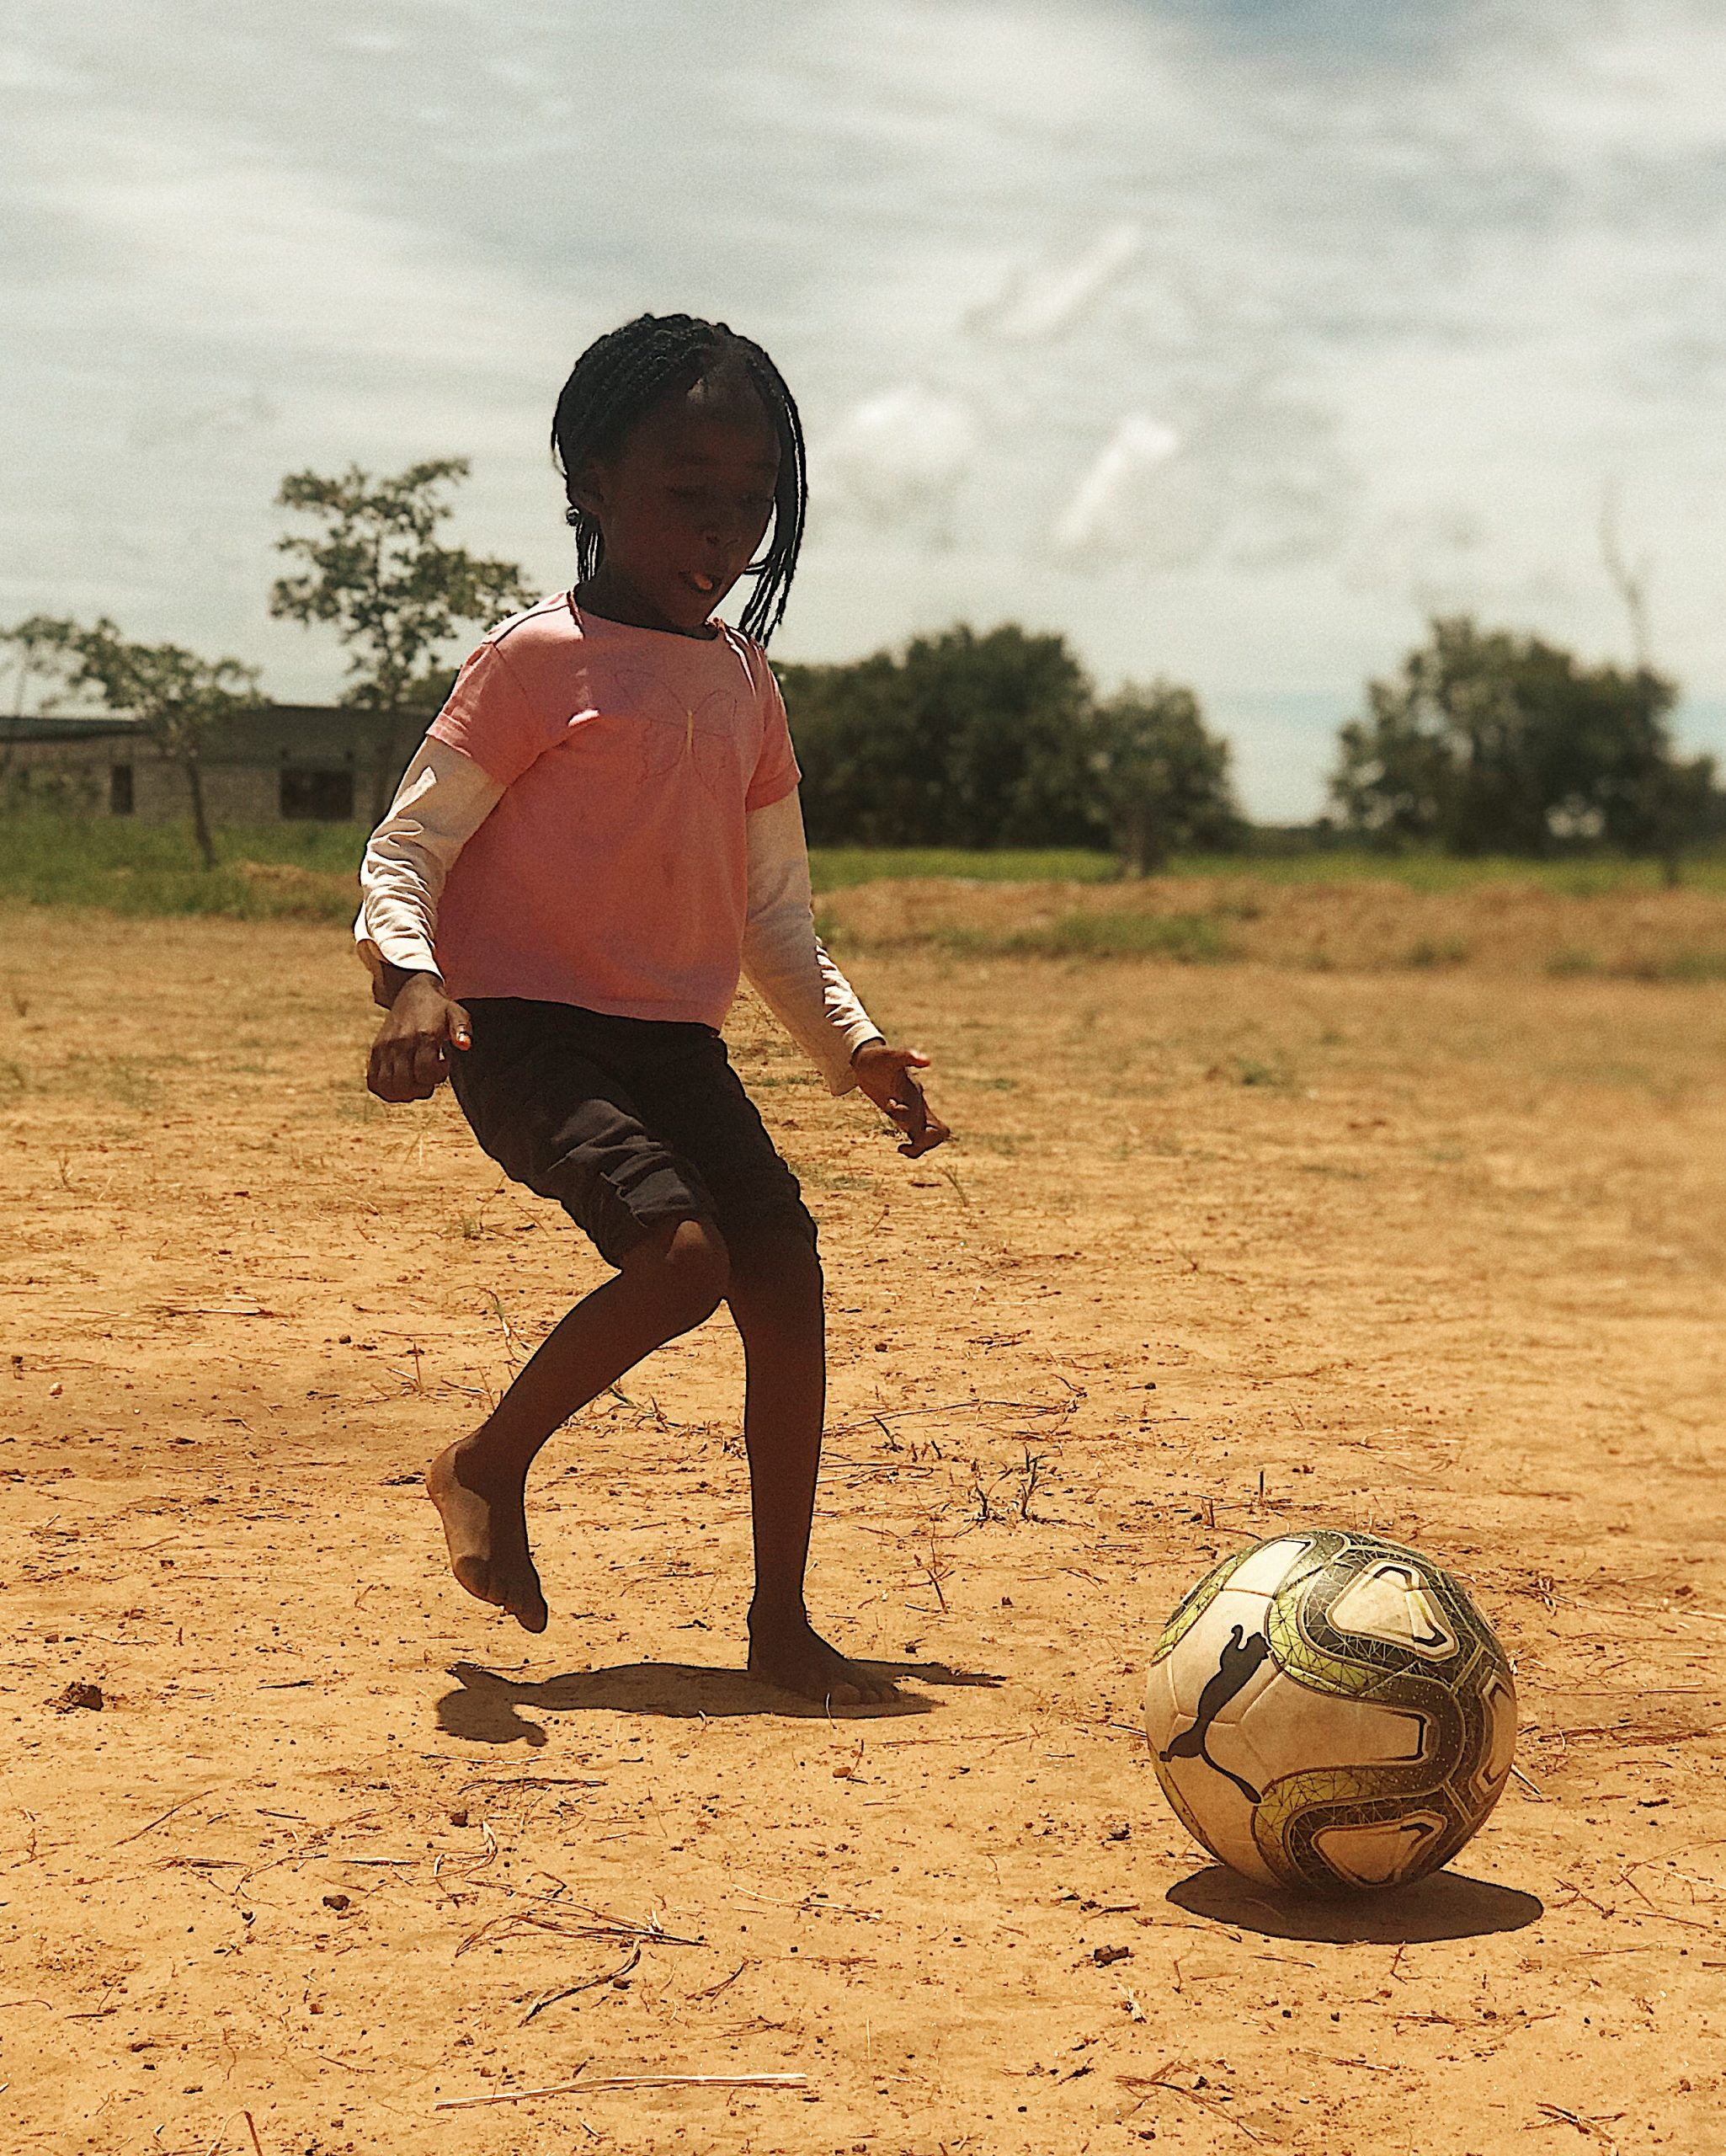 https://viceversaonline.nl/site/wp-content/uploads/2019/11/Little_Zambian_girl_playing_football-scaled.jpg